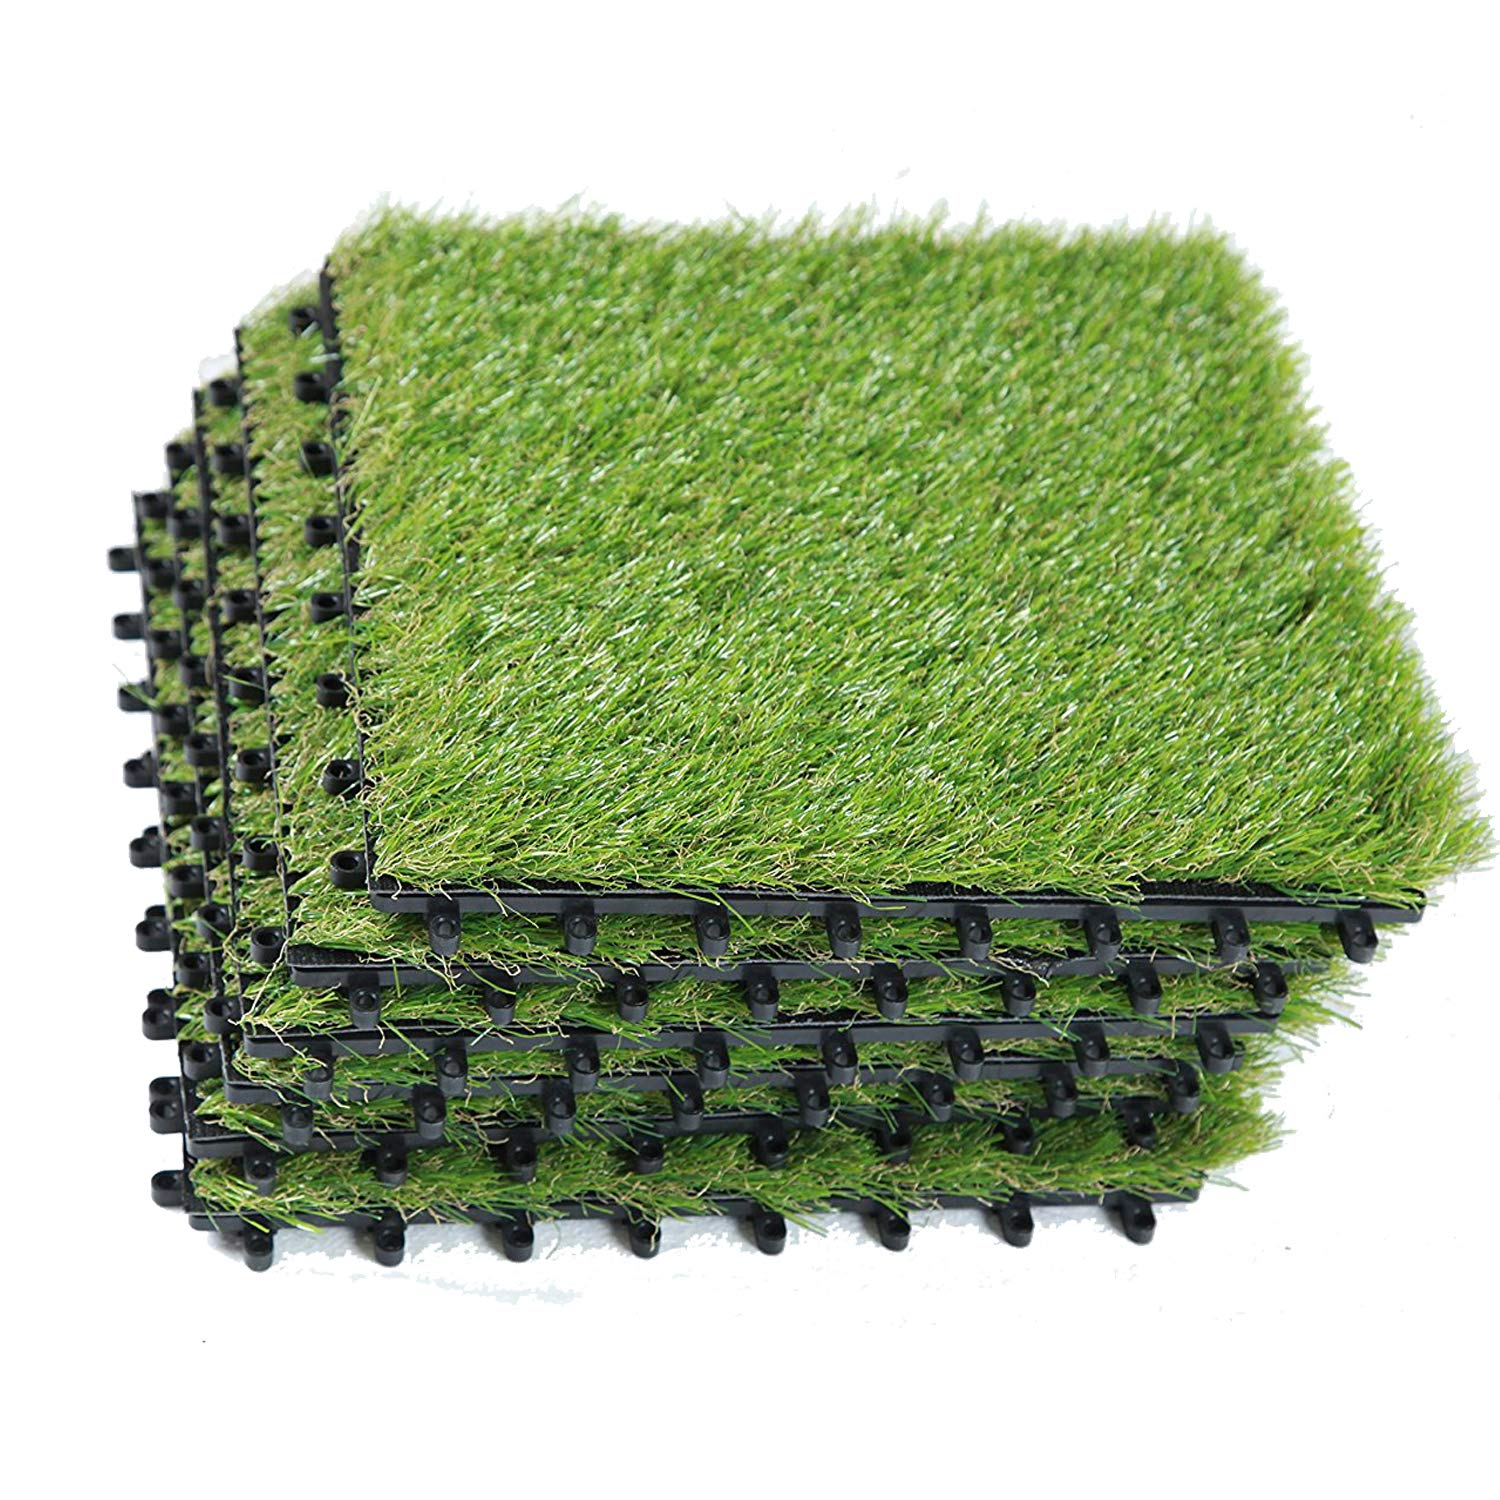 Ecomatrix Artificial Grass Tiles Interlocking Fake Deck